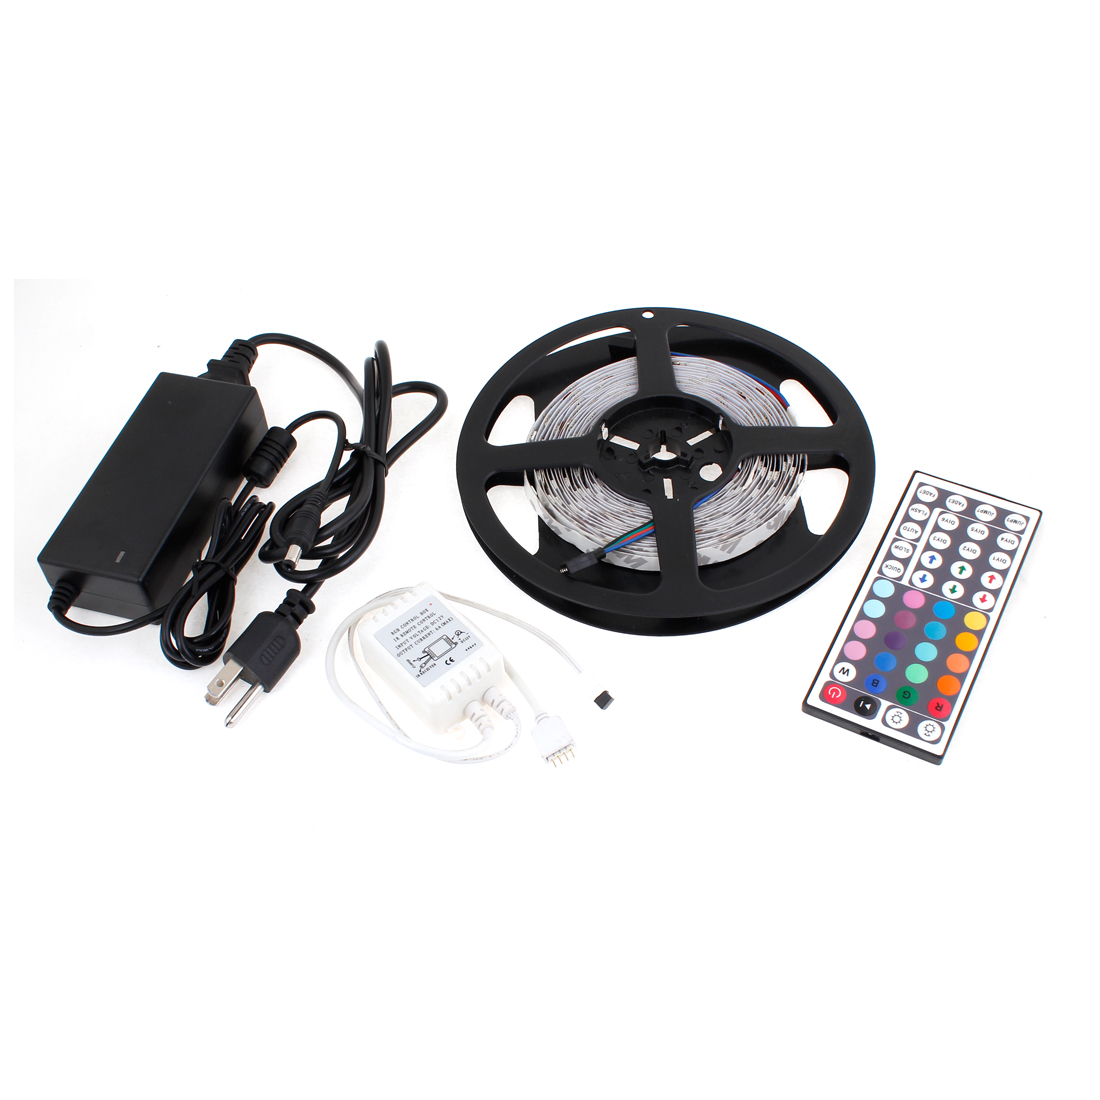 4 in 1 Car 5M 150 Colorful 5050 SMD LEDs Light Strip AC/DC Adapter